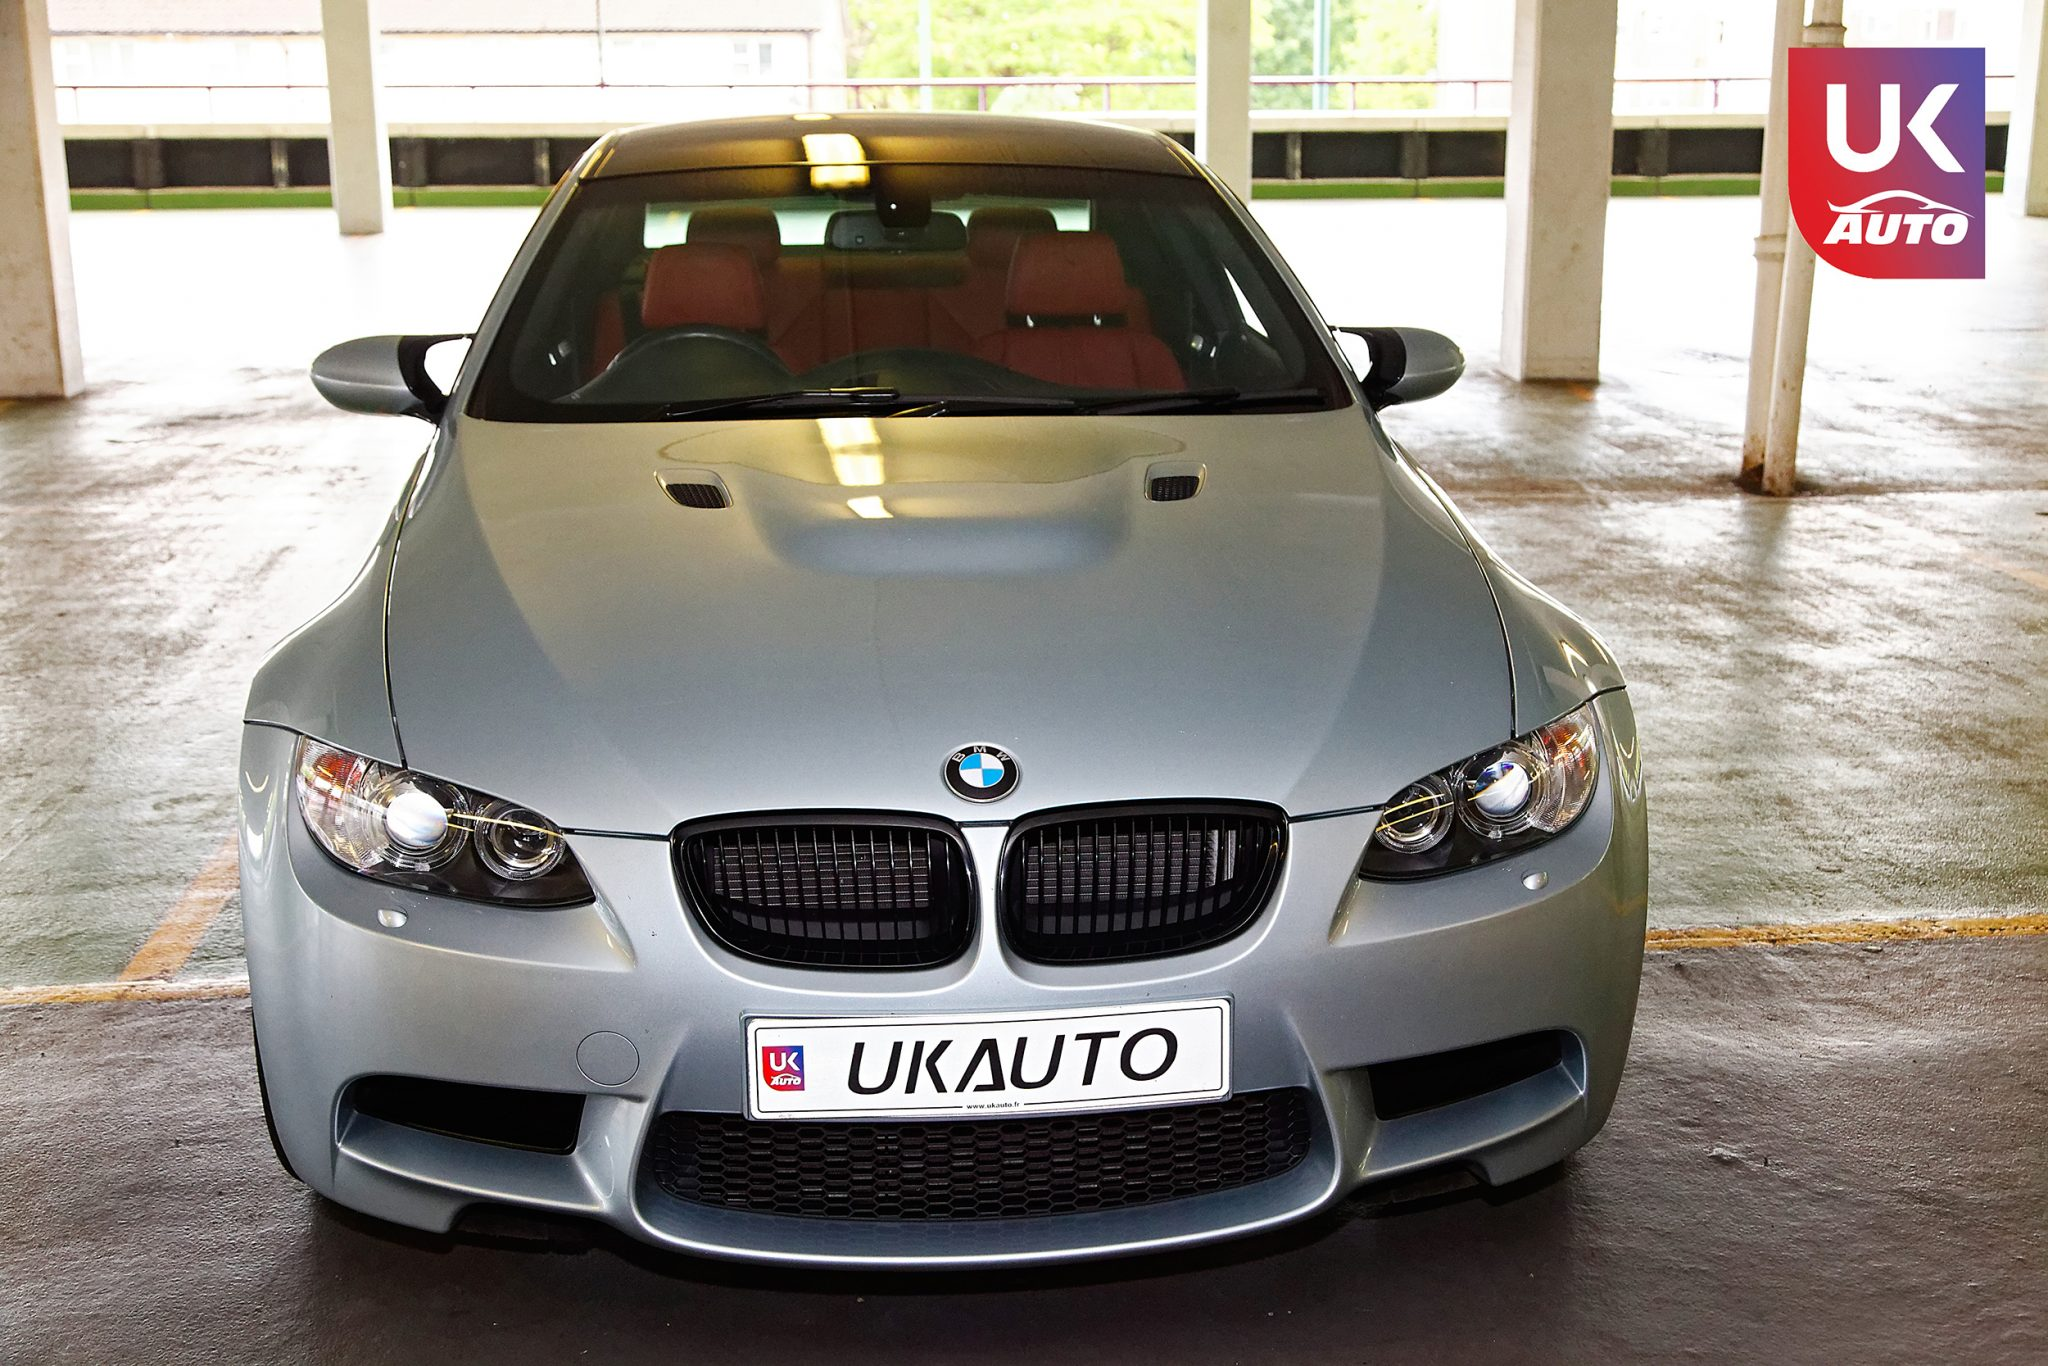 ukauto uk import bmw angleterre bmw m3 rhd e92 v8 mandataire uk angleterre voiture3 - Felicitation a Philippe BMW M3 E92 RHD POUR IMPORTER UNE VOITURE EN ANGLETERRE